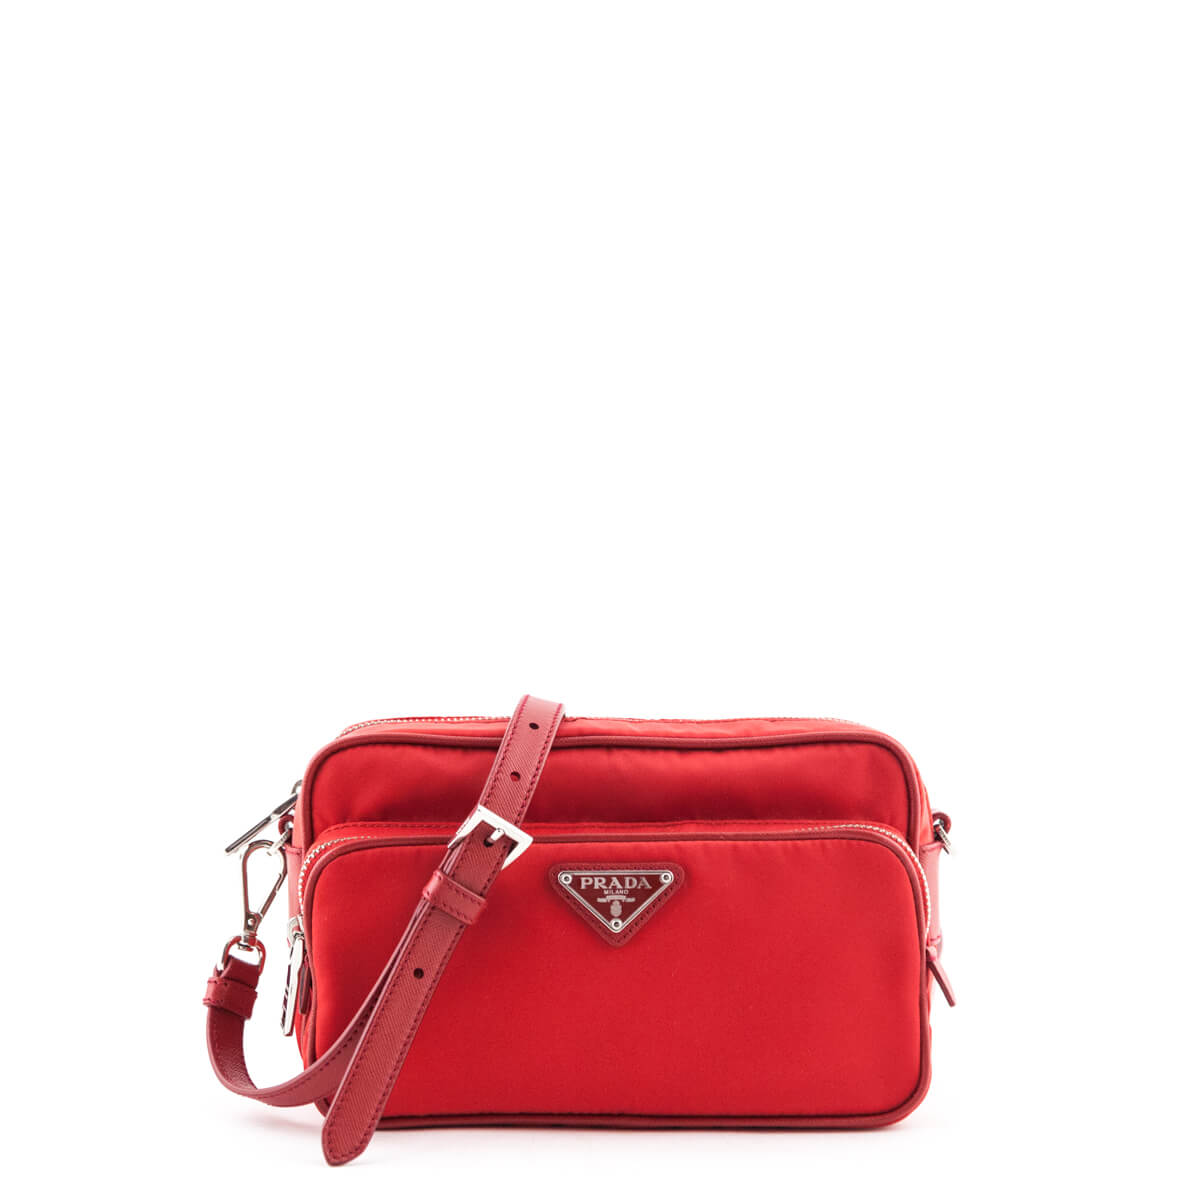 e98128e9b345d1 Prada Red Tessuto Nylon Crossbody Camera bag - LOVE that BAG - Preowned  Authentic Designer Handbags ...